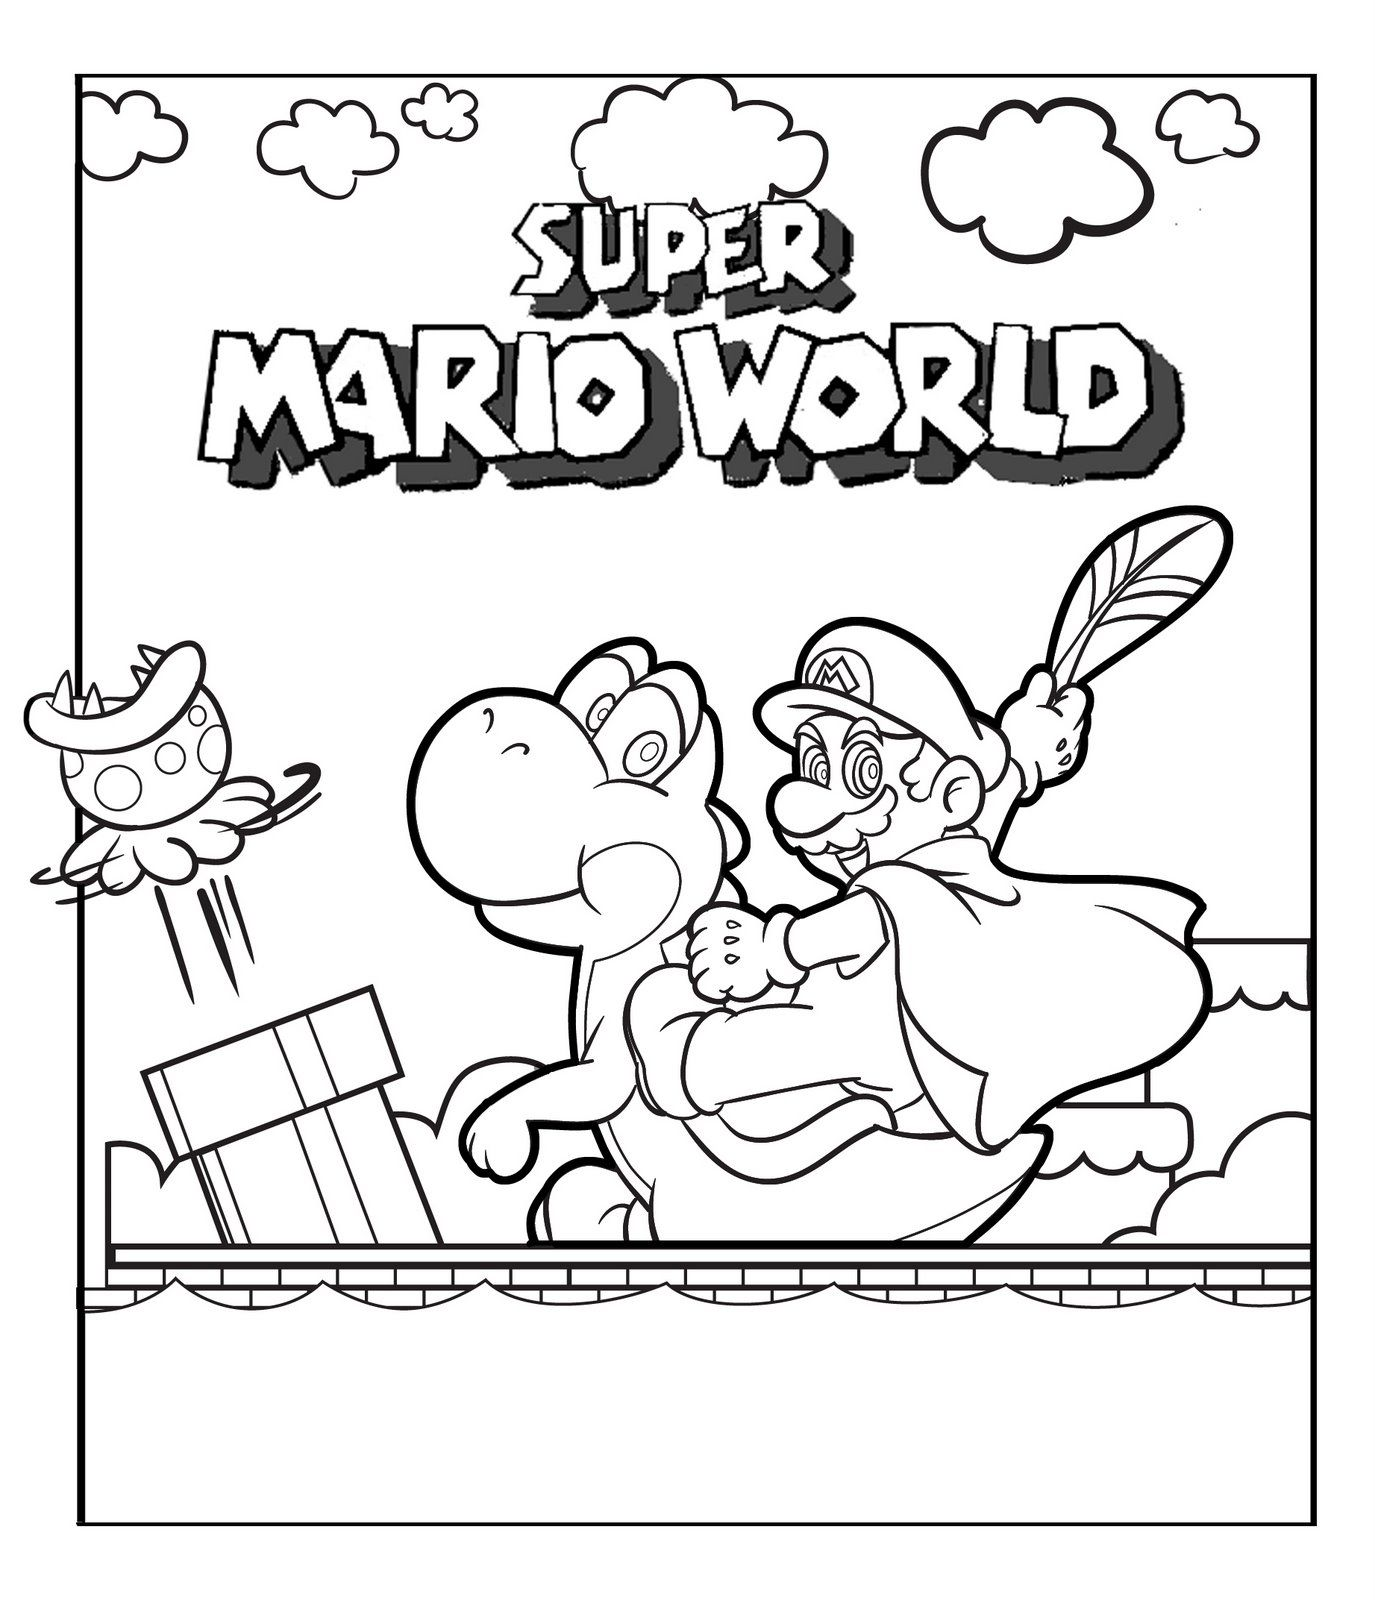 Printable Mario Coloring Pages Super Mario Coloring Pages Mario